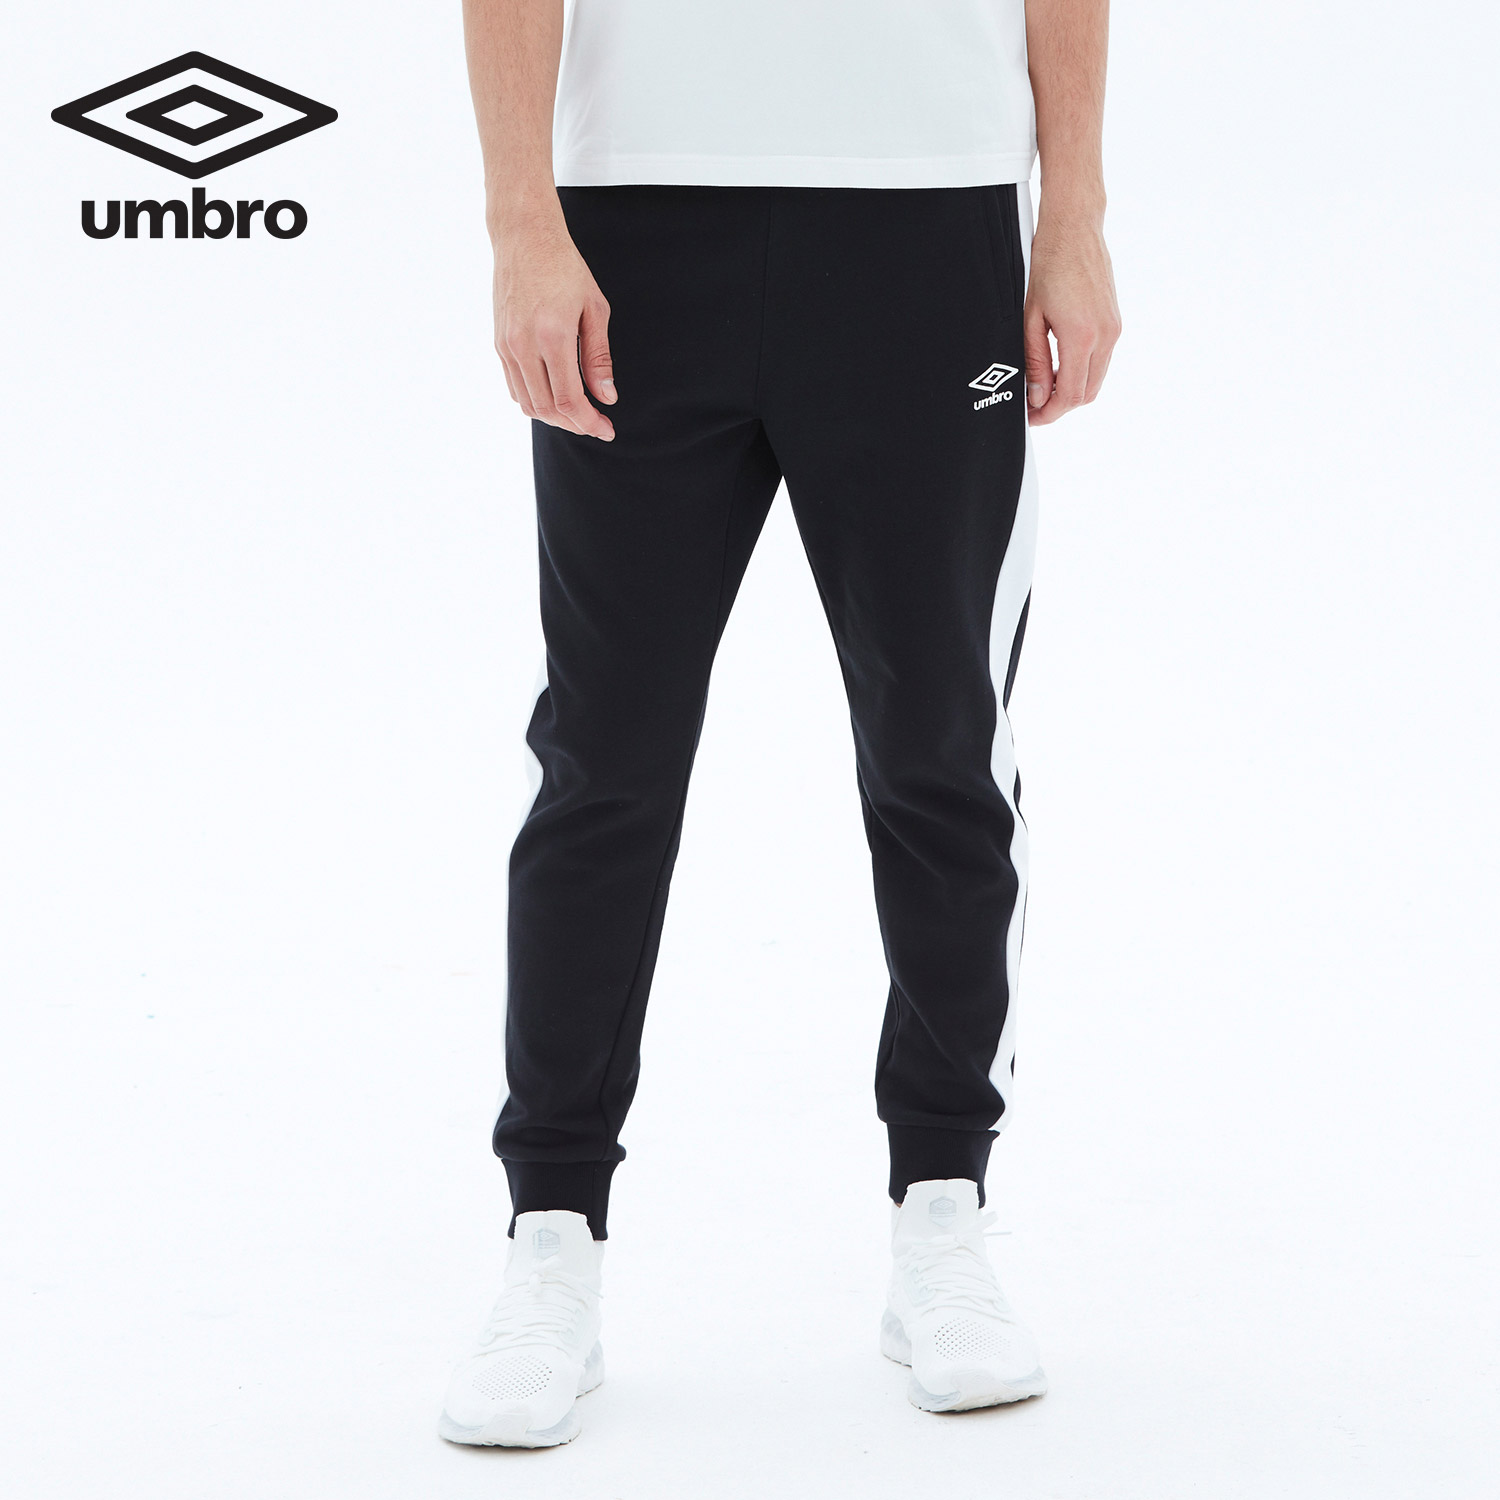 цена на Umbro Sweatpants 2018 New Men Running Knit Sport Pants Cotton 84.3% Polyester Breathable Comfort Trousers UO181AP2301